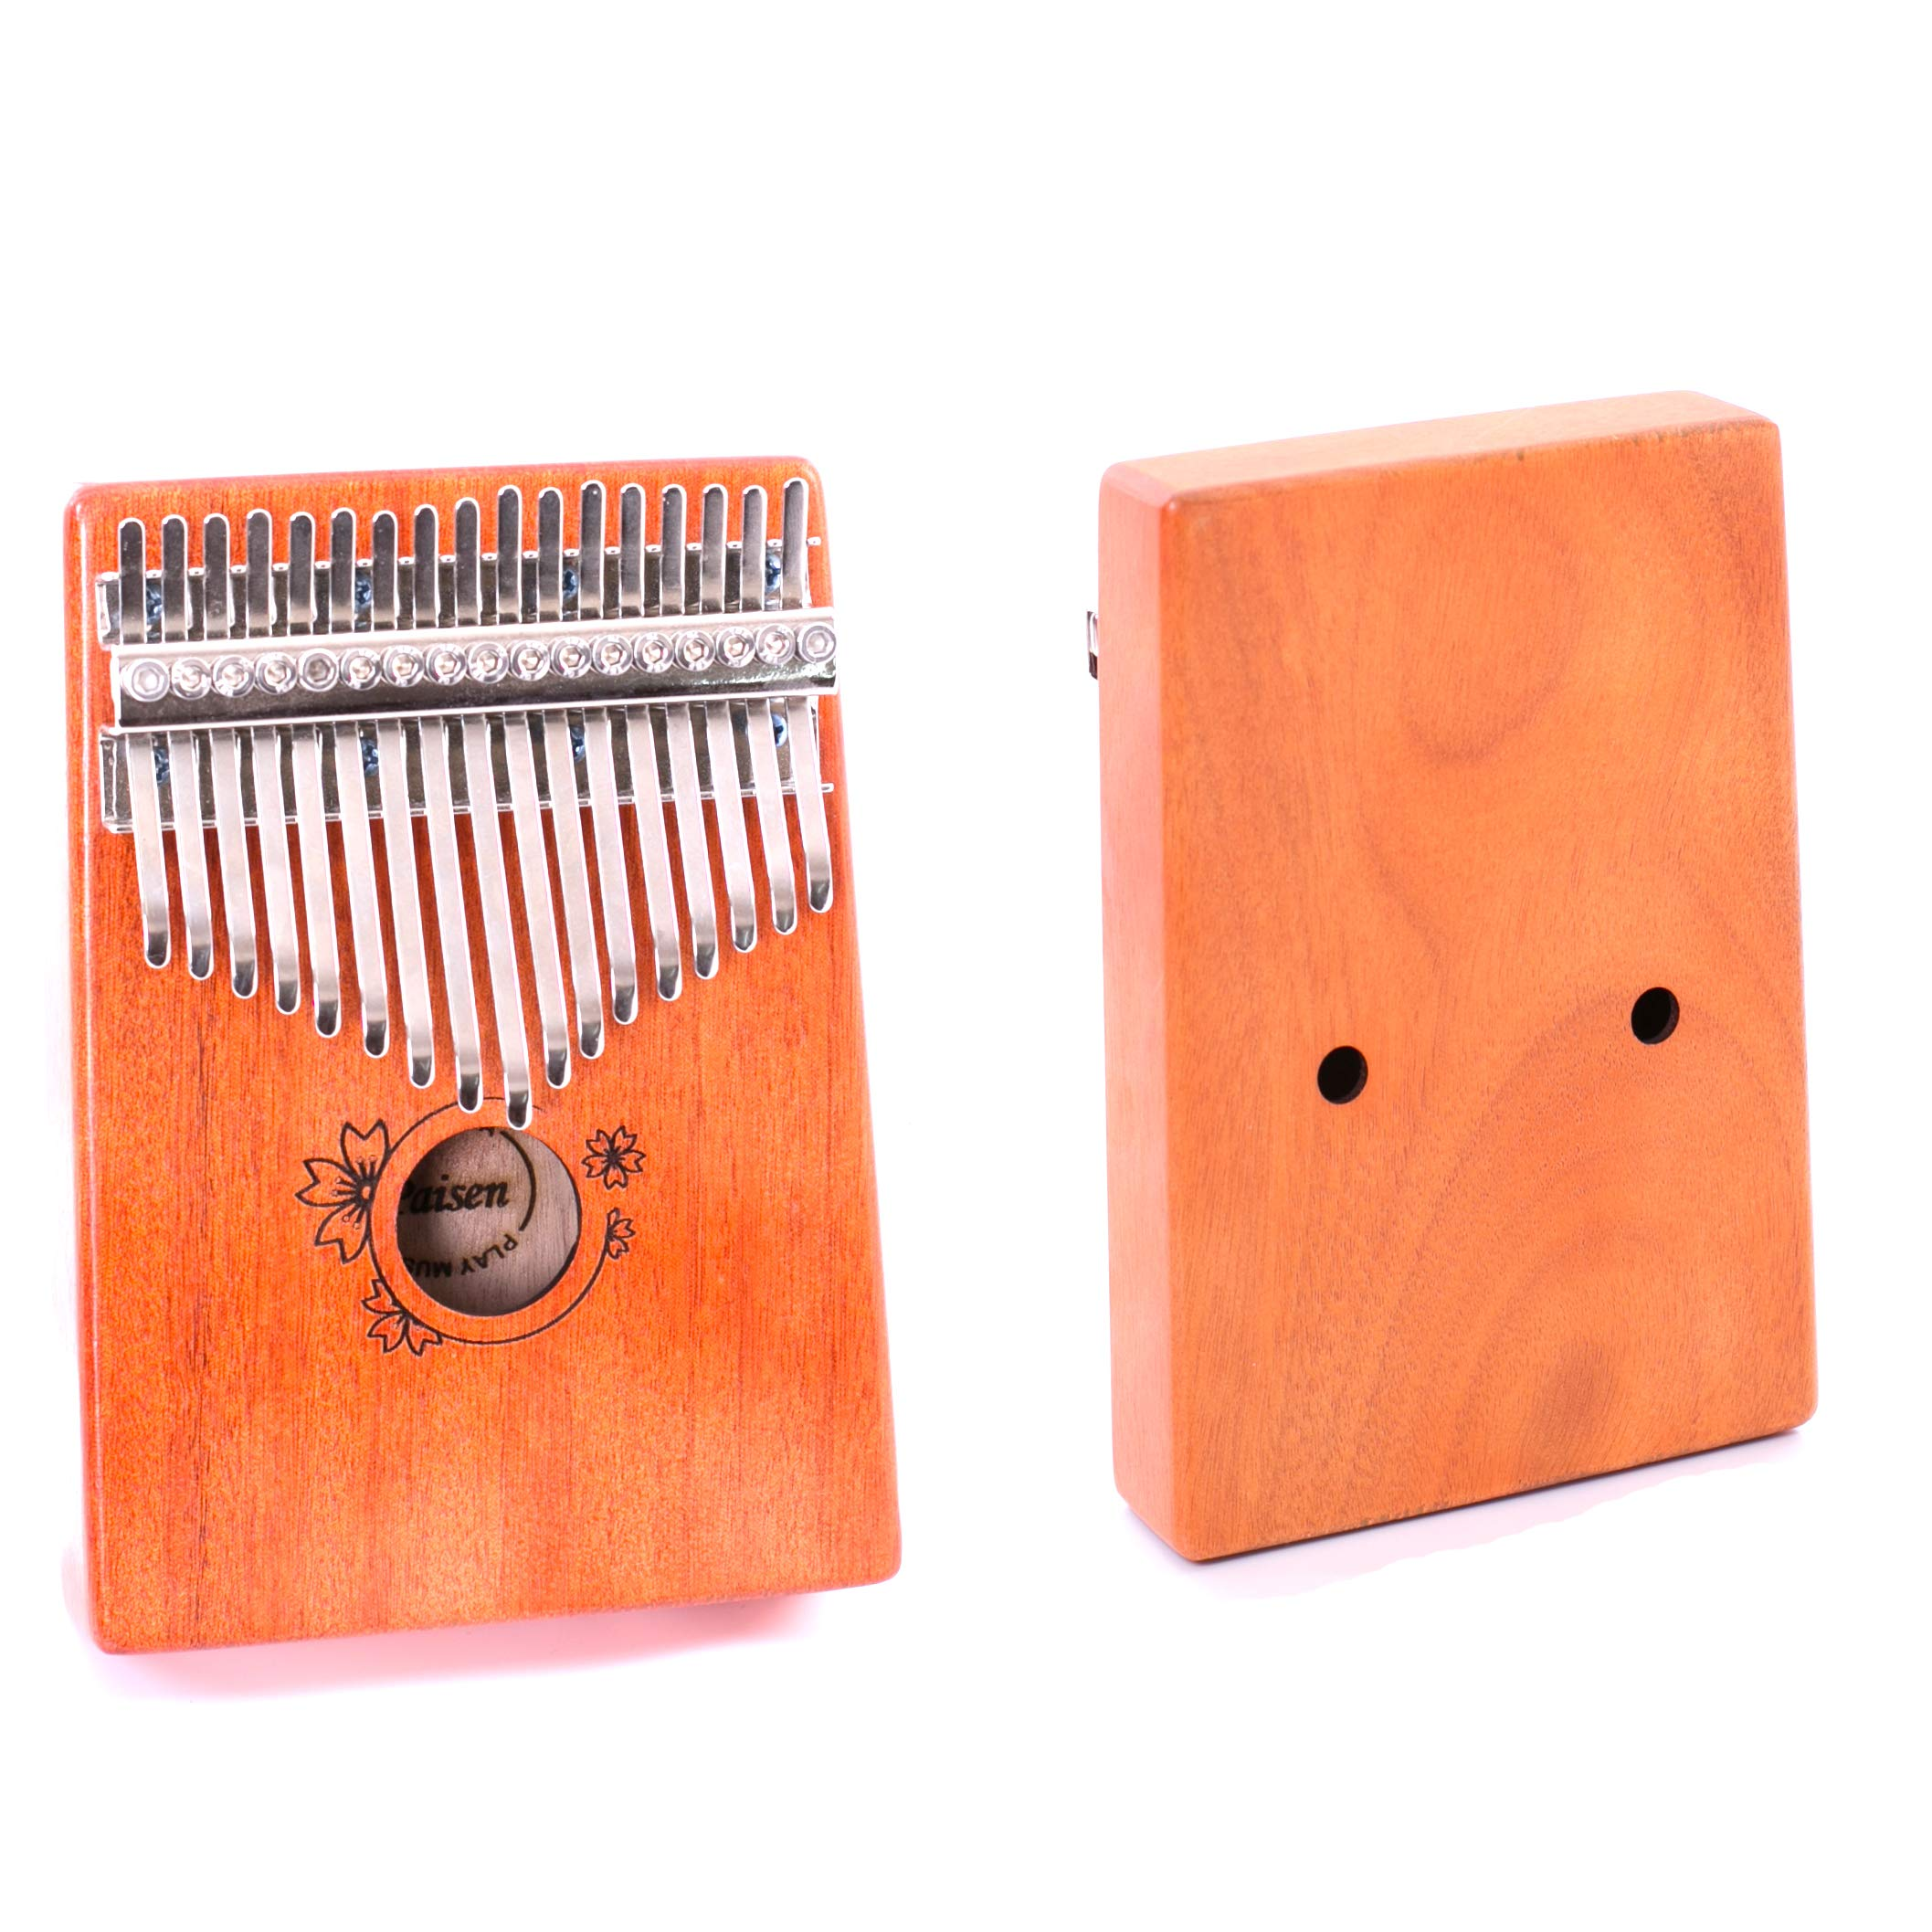 Paisen Kalimba 17 keys Thumb Piano with Study Instruction and Tune Hammer,Mahogany Wood Finger Piano with Portable Carrying Bag and Shoulder Strap for Kids Adult Beginners by Paisen (Image #6)